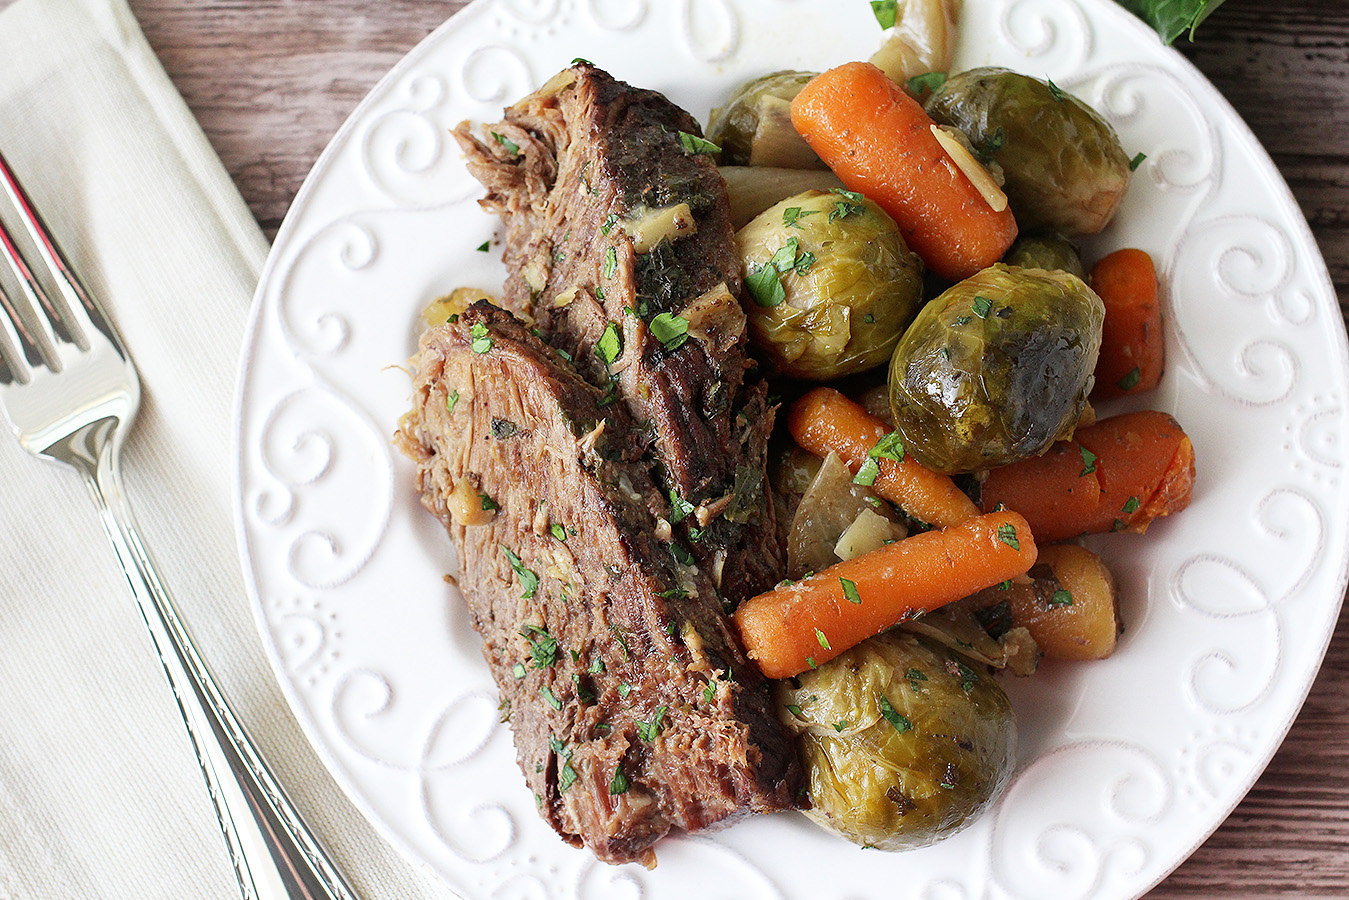 Slow Cooker Pot Roast Paleo Aip Whole30 Adventures